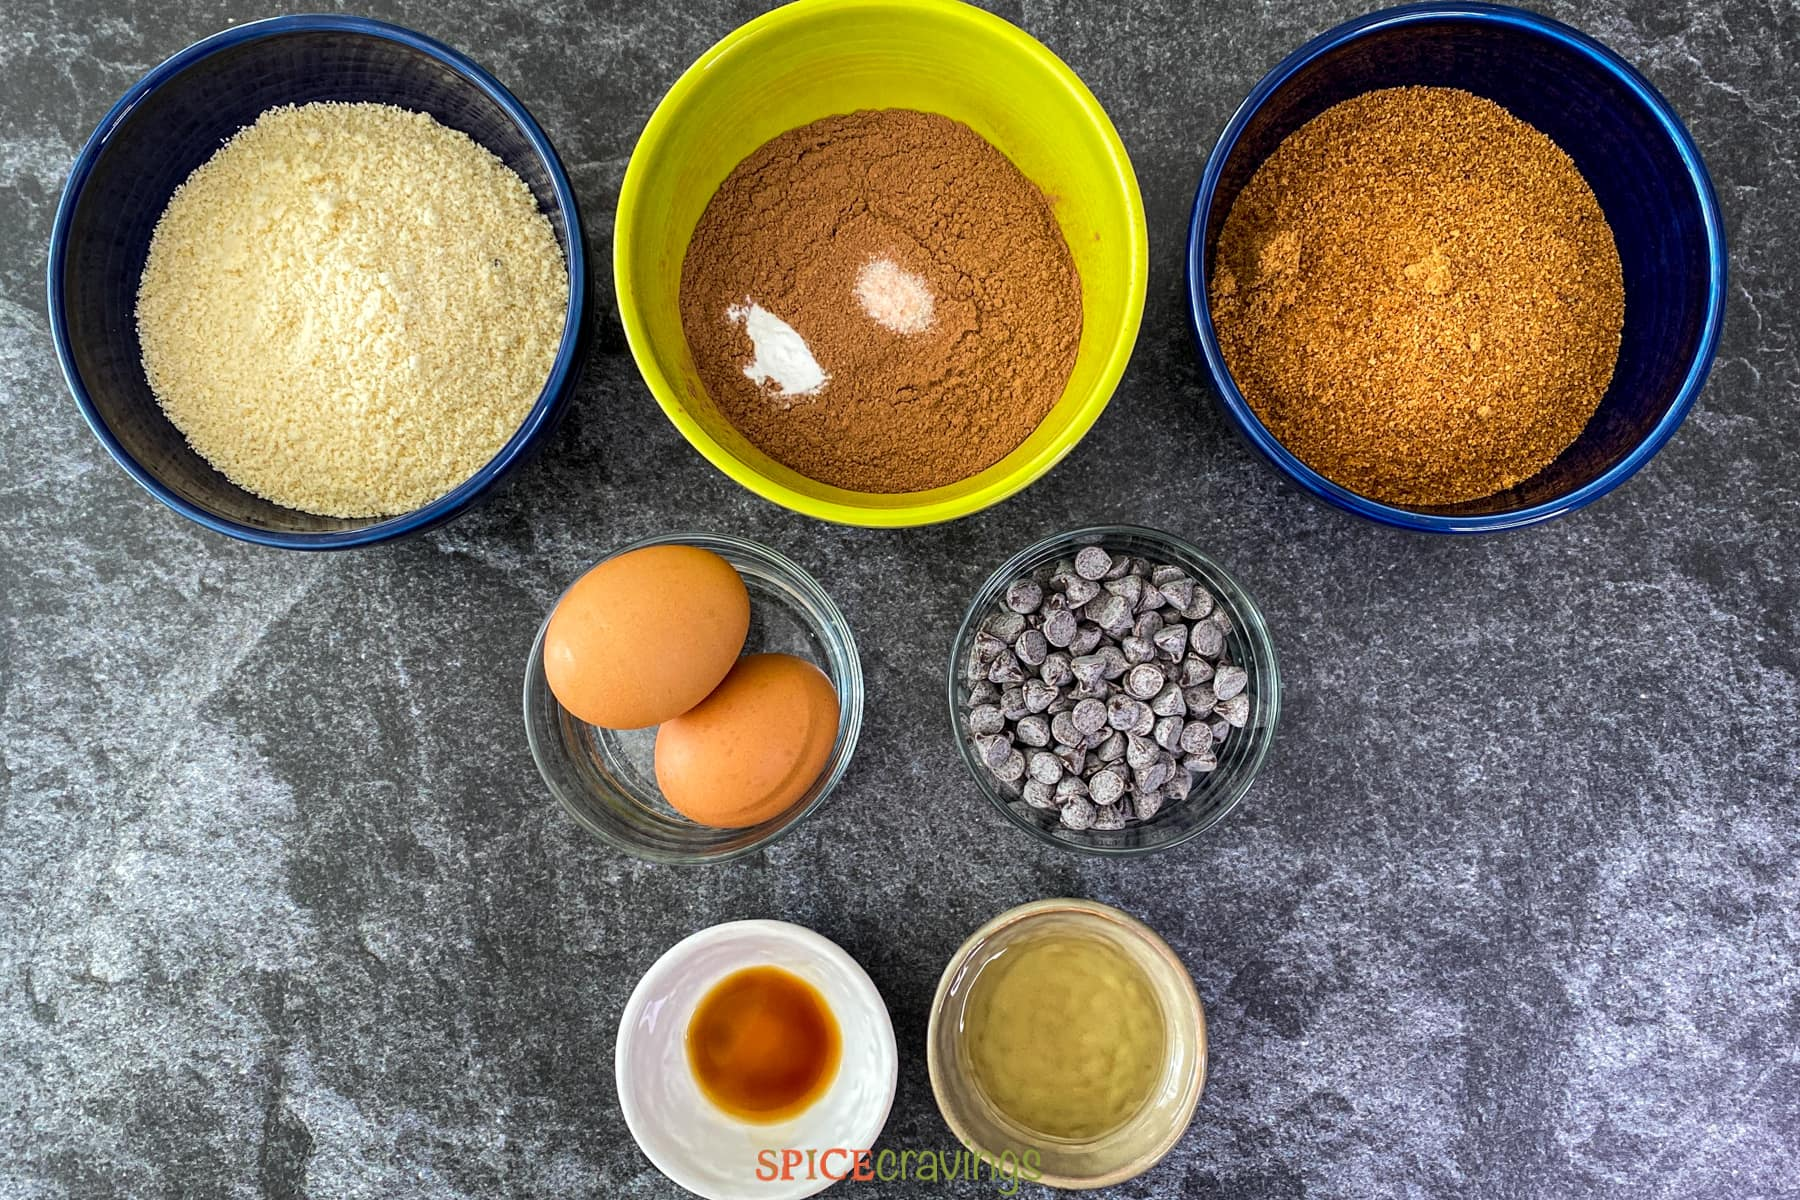 Ingredients for almond free brownies in bowls on a counter